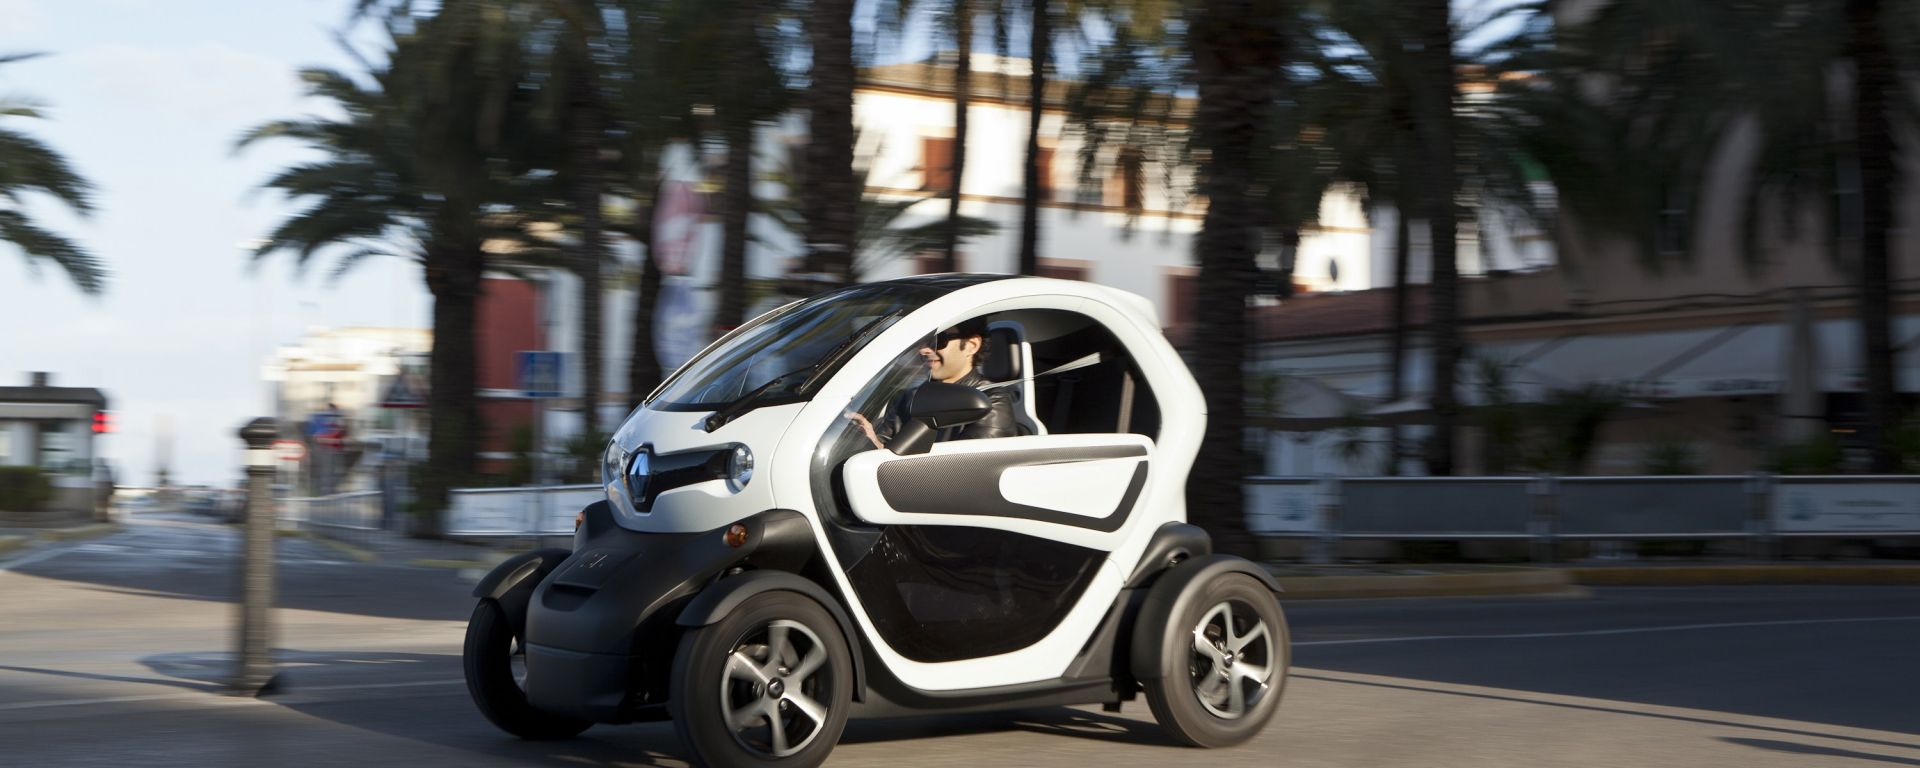 Renault Twizy, ora anche in video